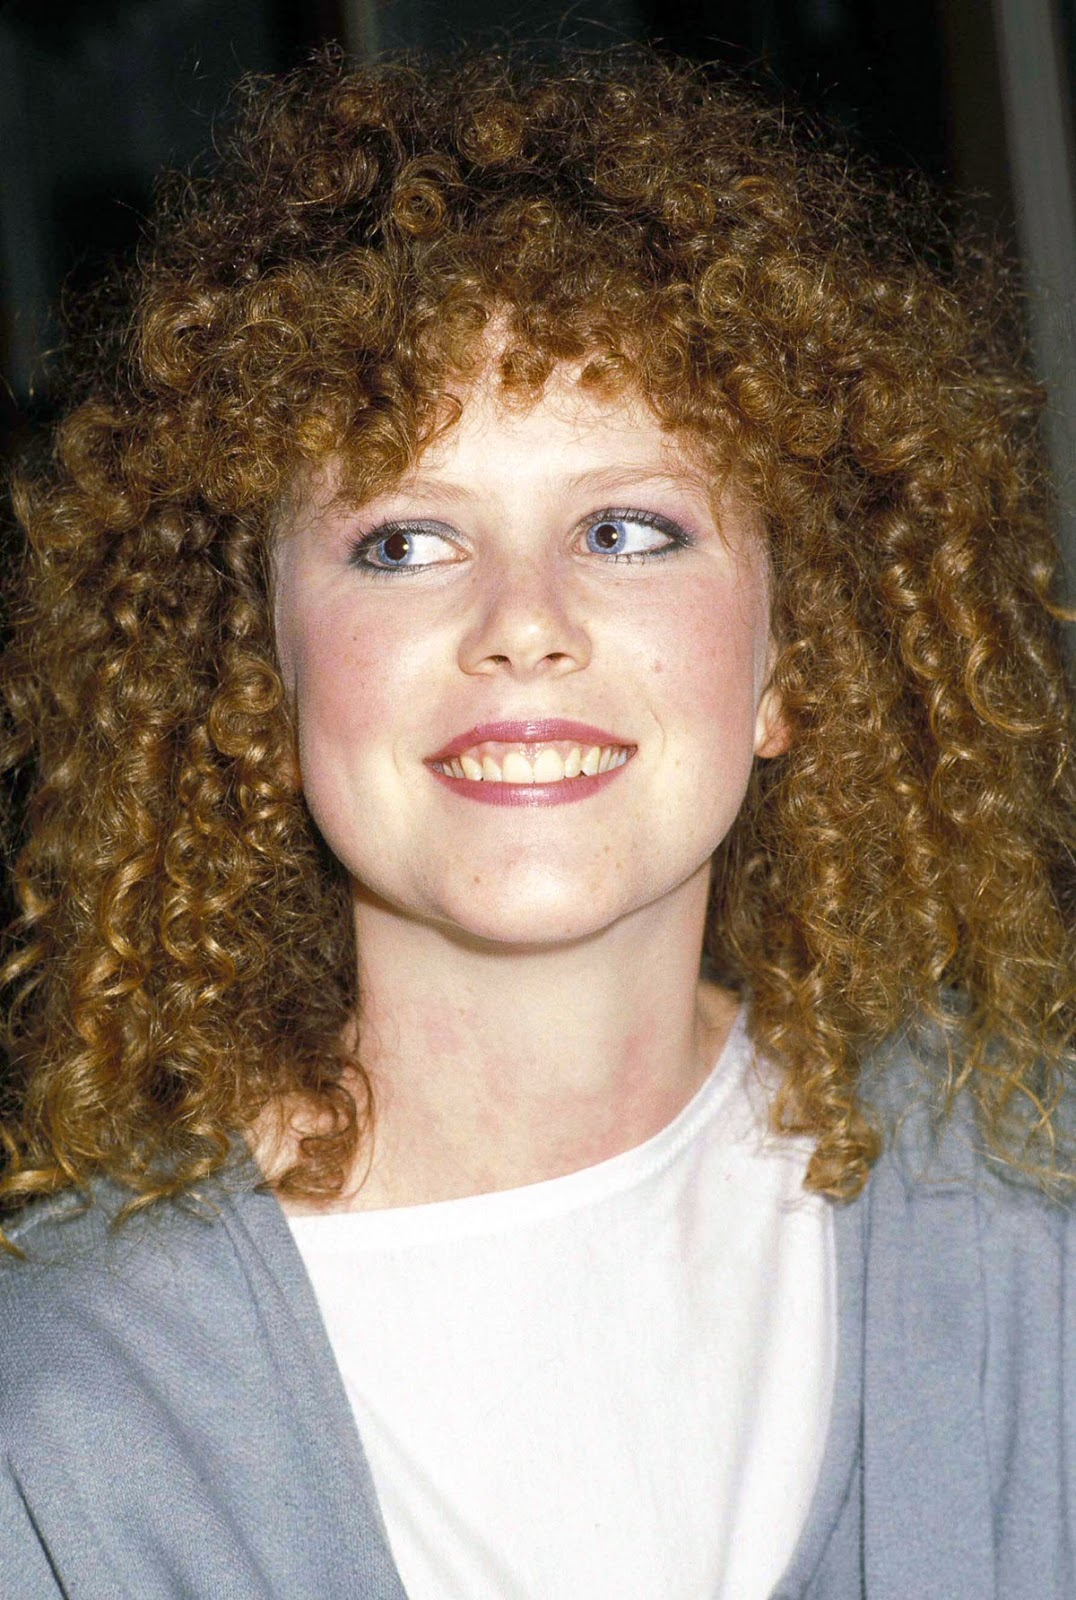 Coiffure 1990 Rare Photographs Of 16 Year Old Nicole Kidman In Sydney